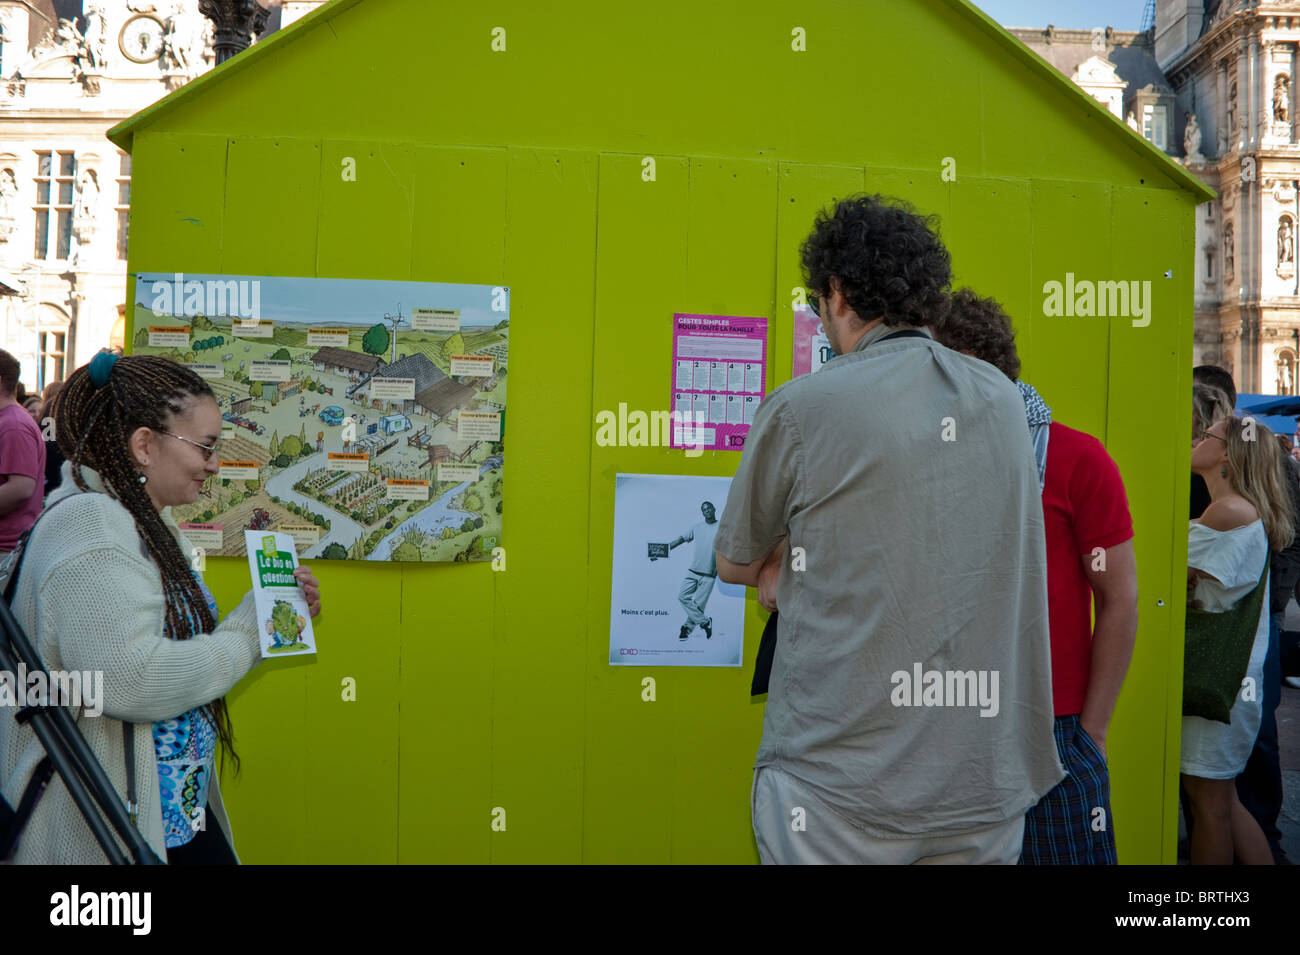 Paris, France - Exterior, Environmental Awareness Day, Young Adults Reading Poster on Wall, global green economy - Stock Image